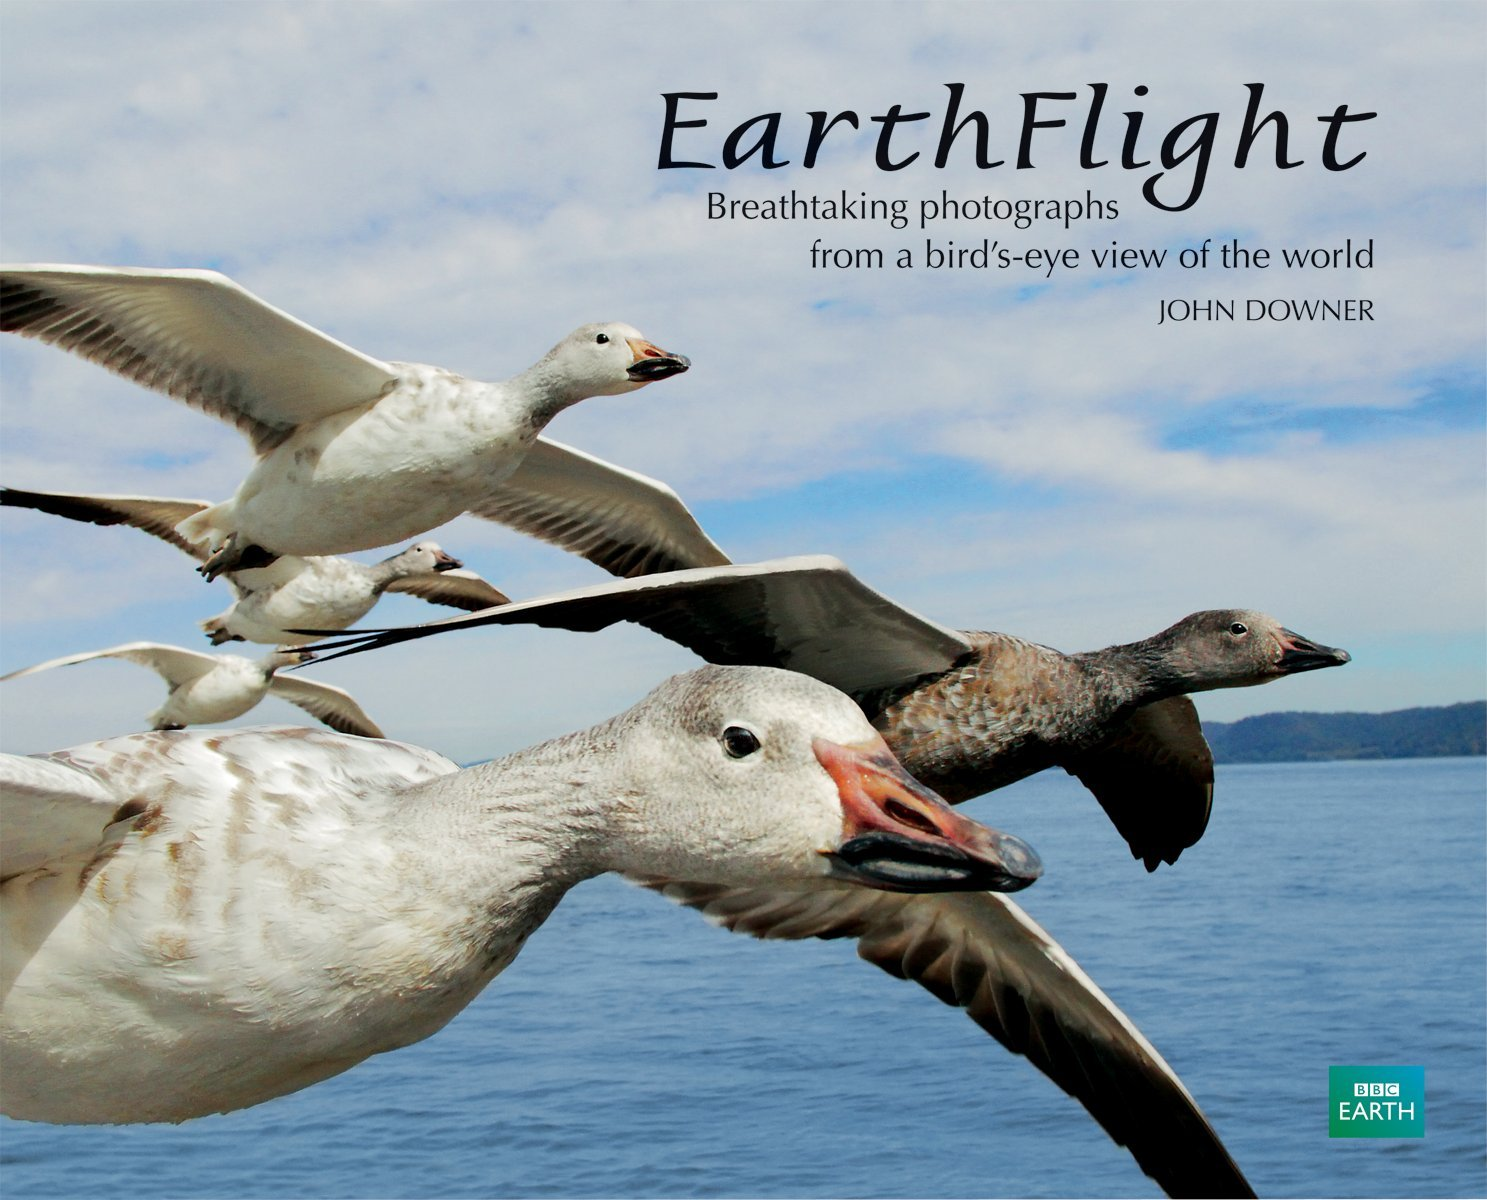 EarthFlight: Breathtaking Photographs from a Bird's-Eye View of the World pdf